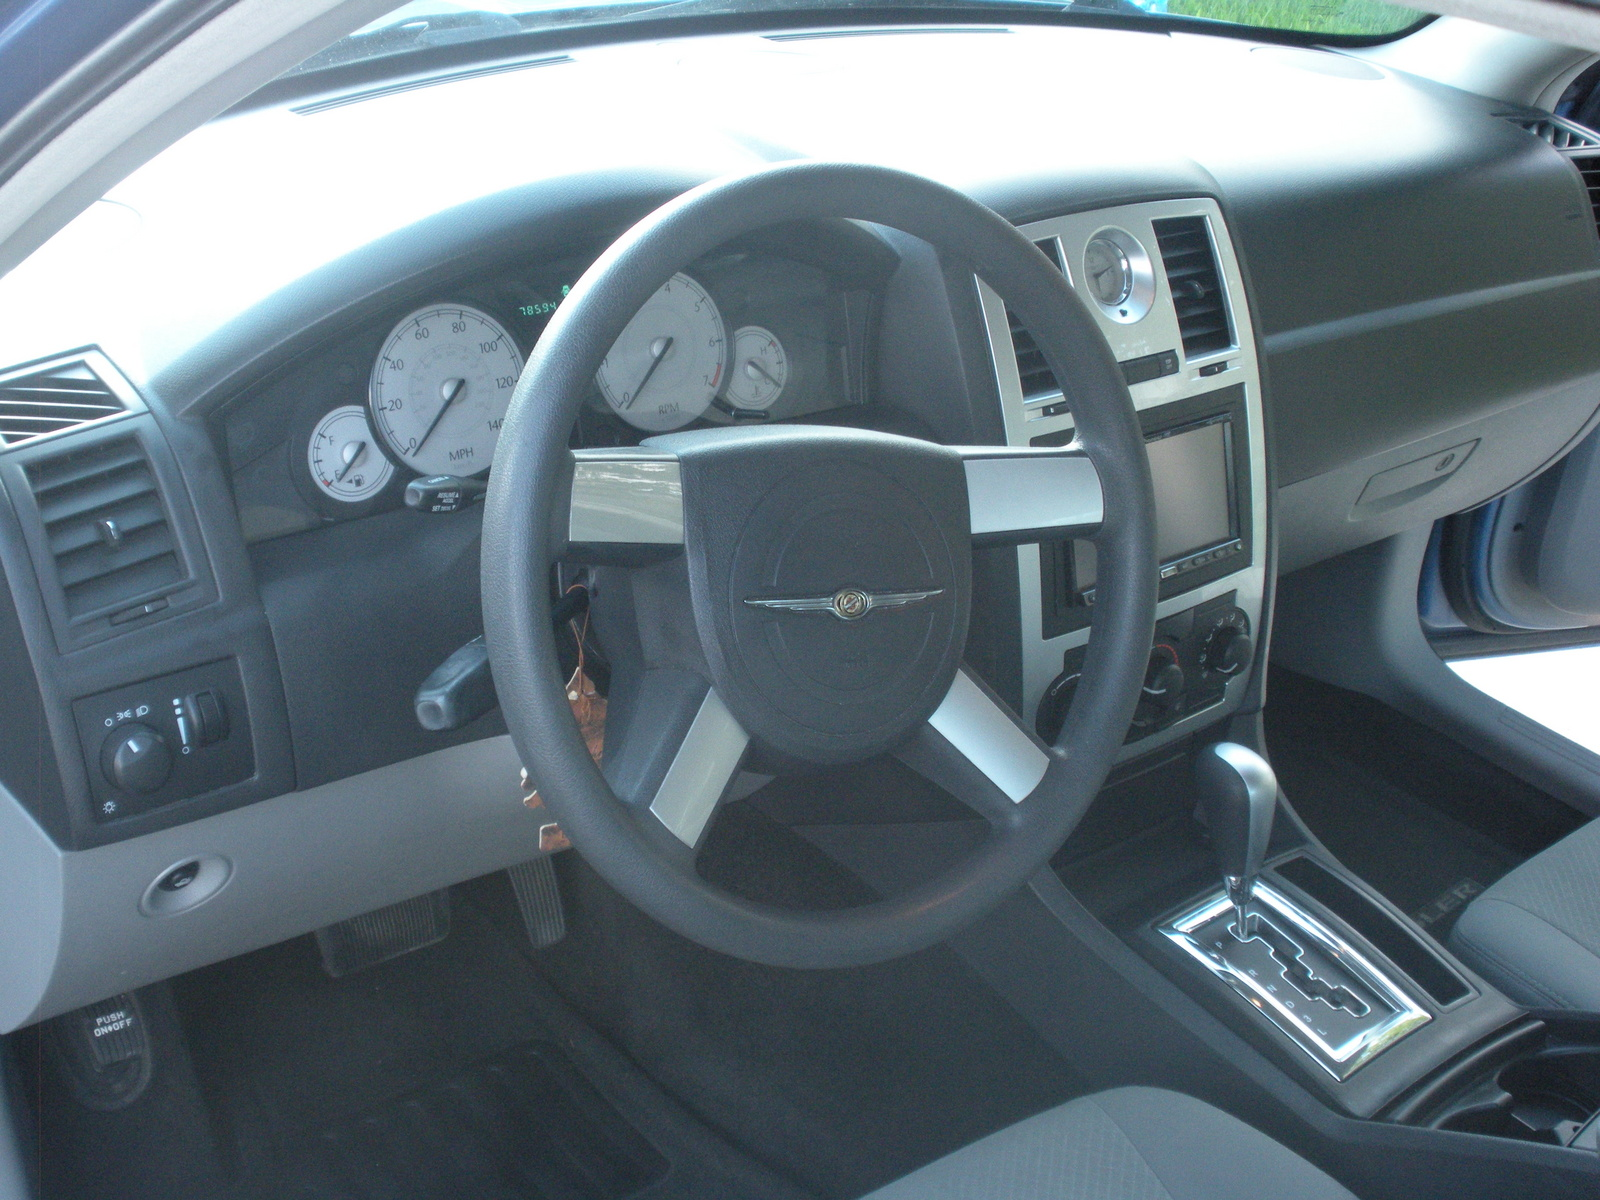 2007 chrysler 300 pictures cargurus - 2007 chrysler 300 custom interior ...